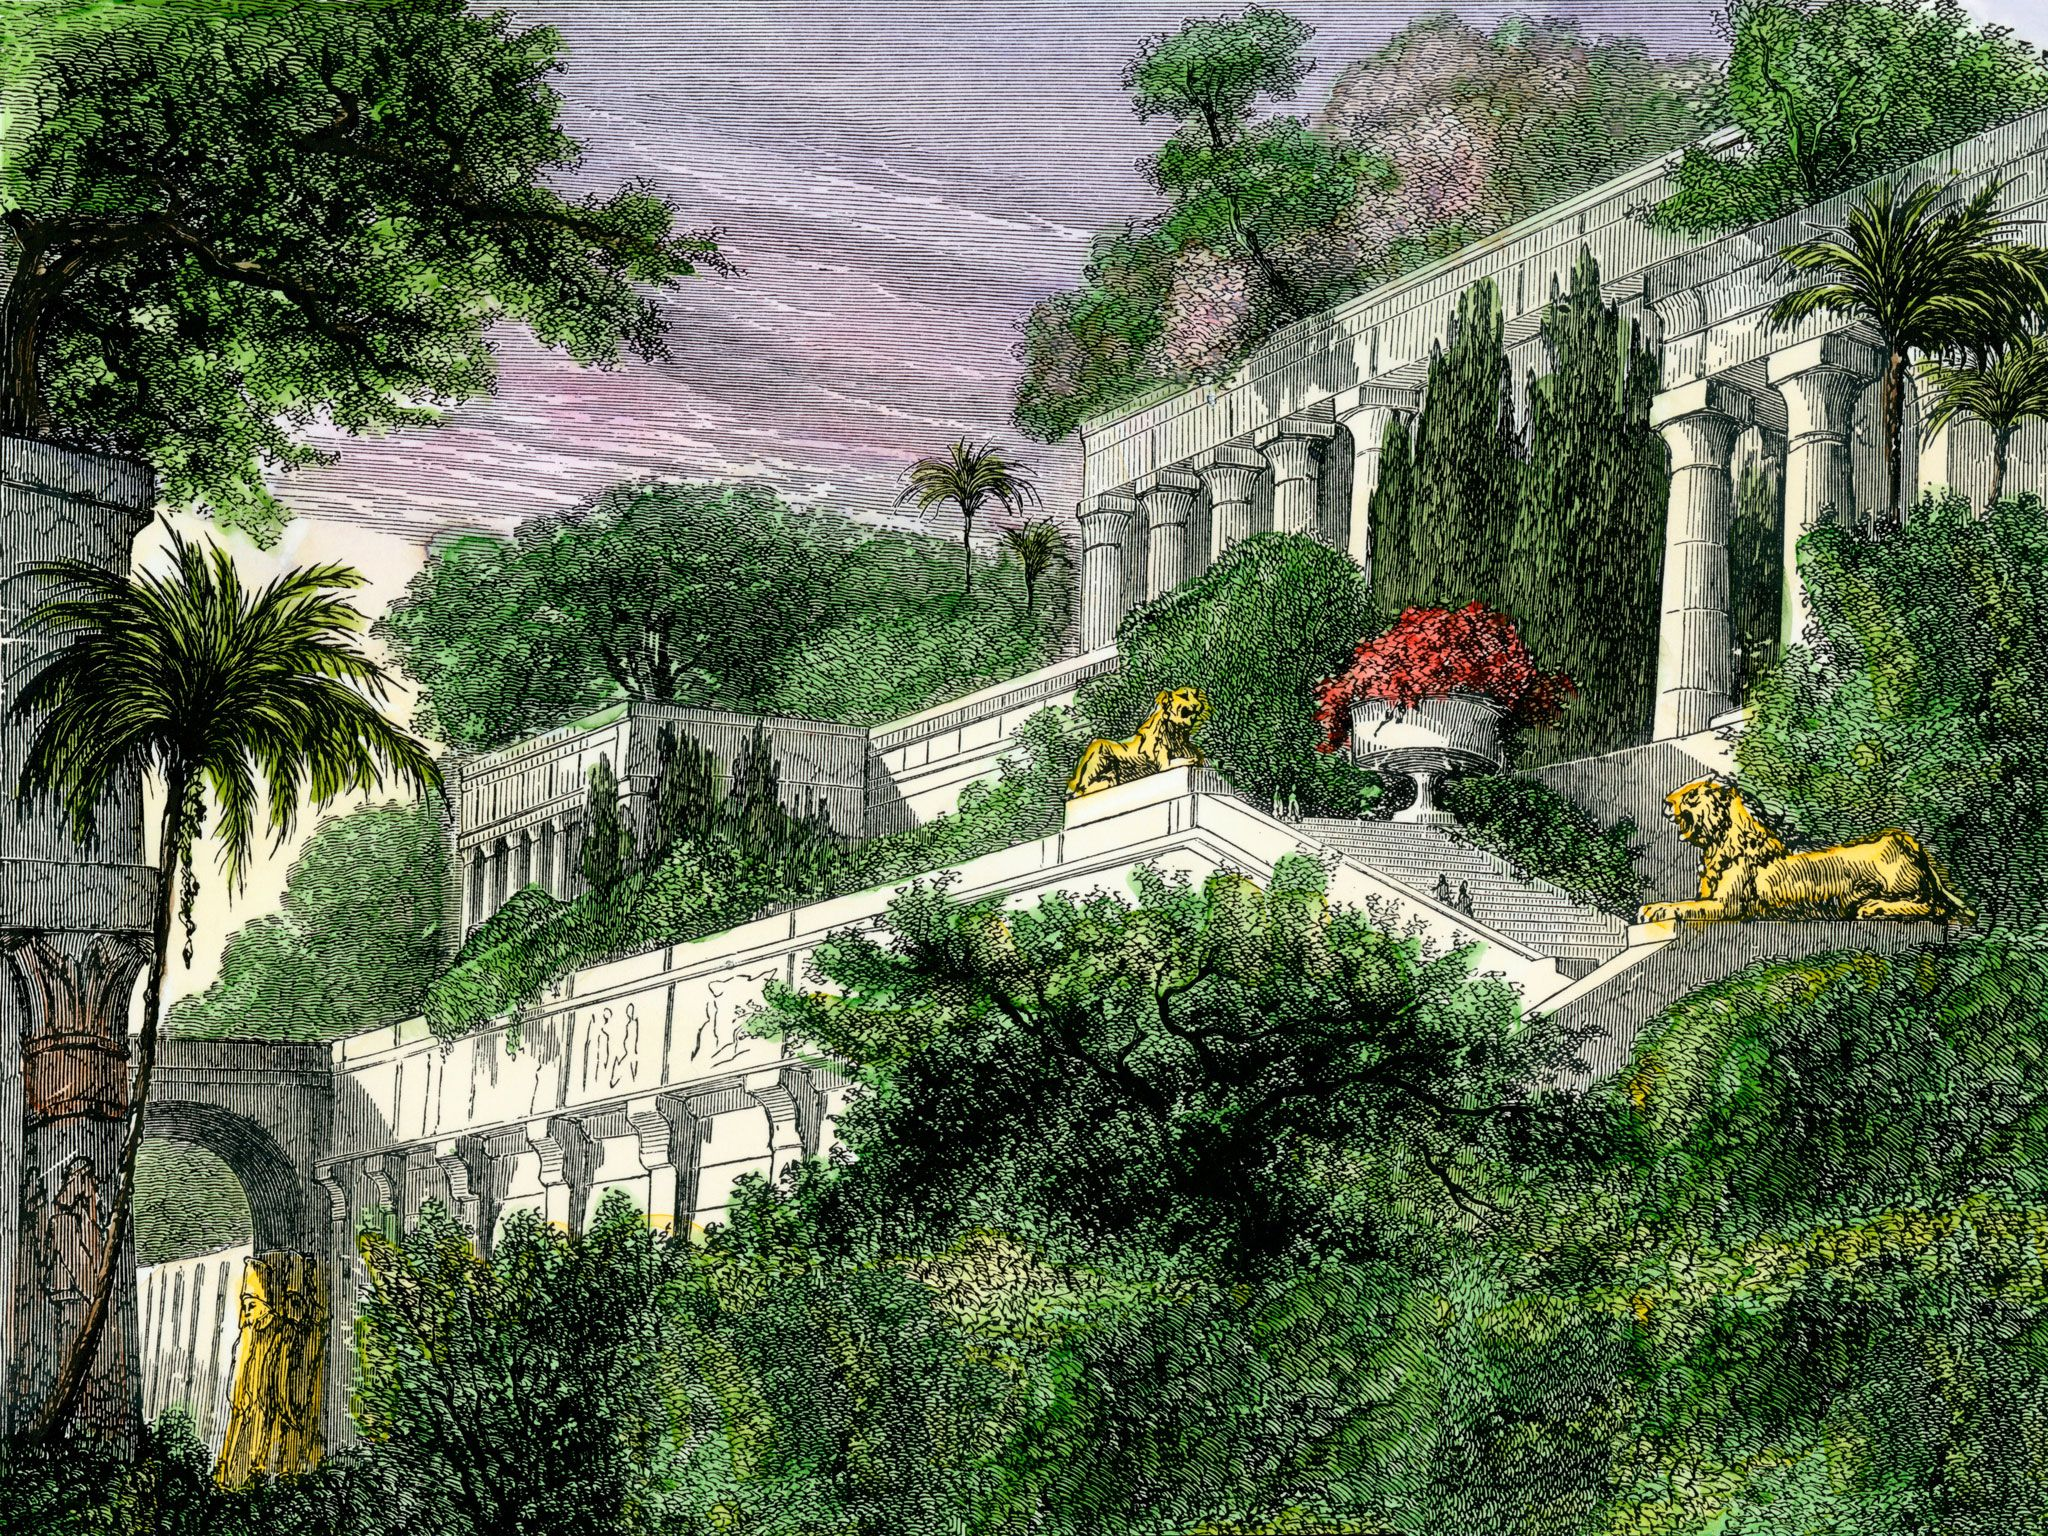 2f4cb6a76b7d00d4fd78a98c56597416 - What Plants Were In The Hanging Gardens Of Babylon